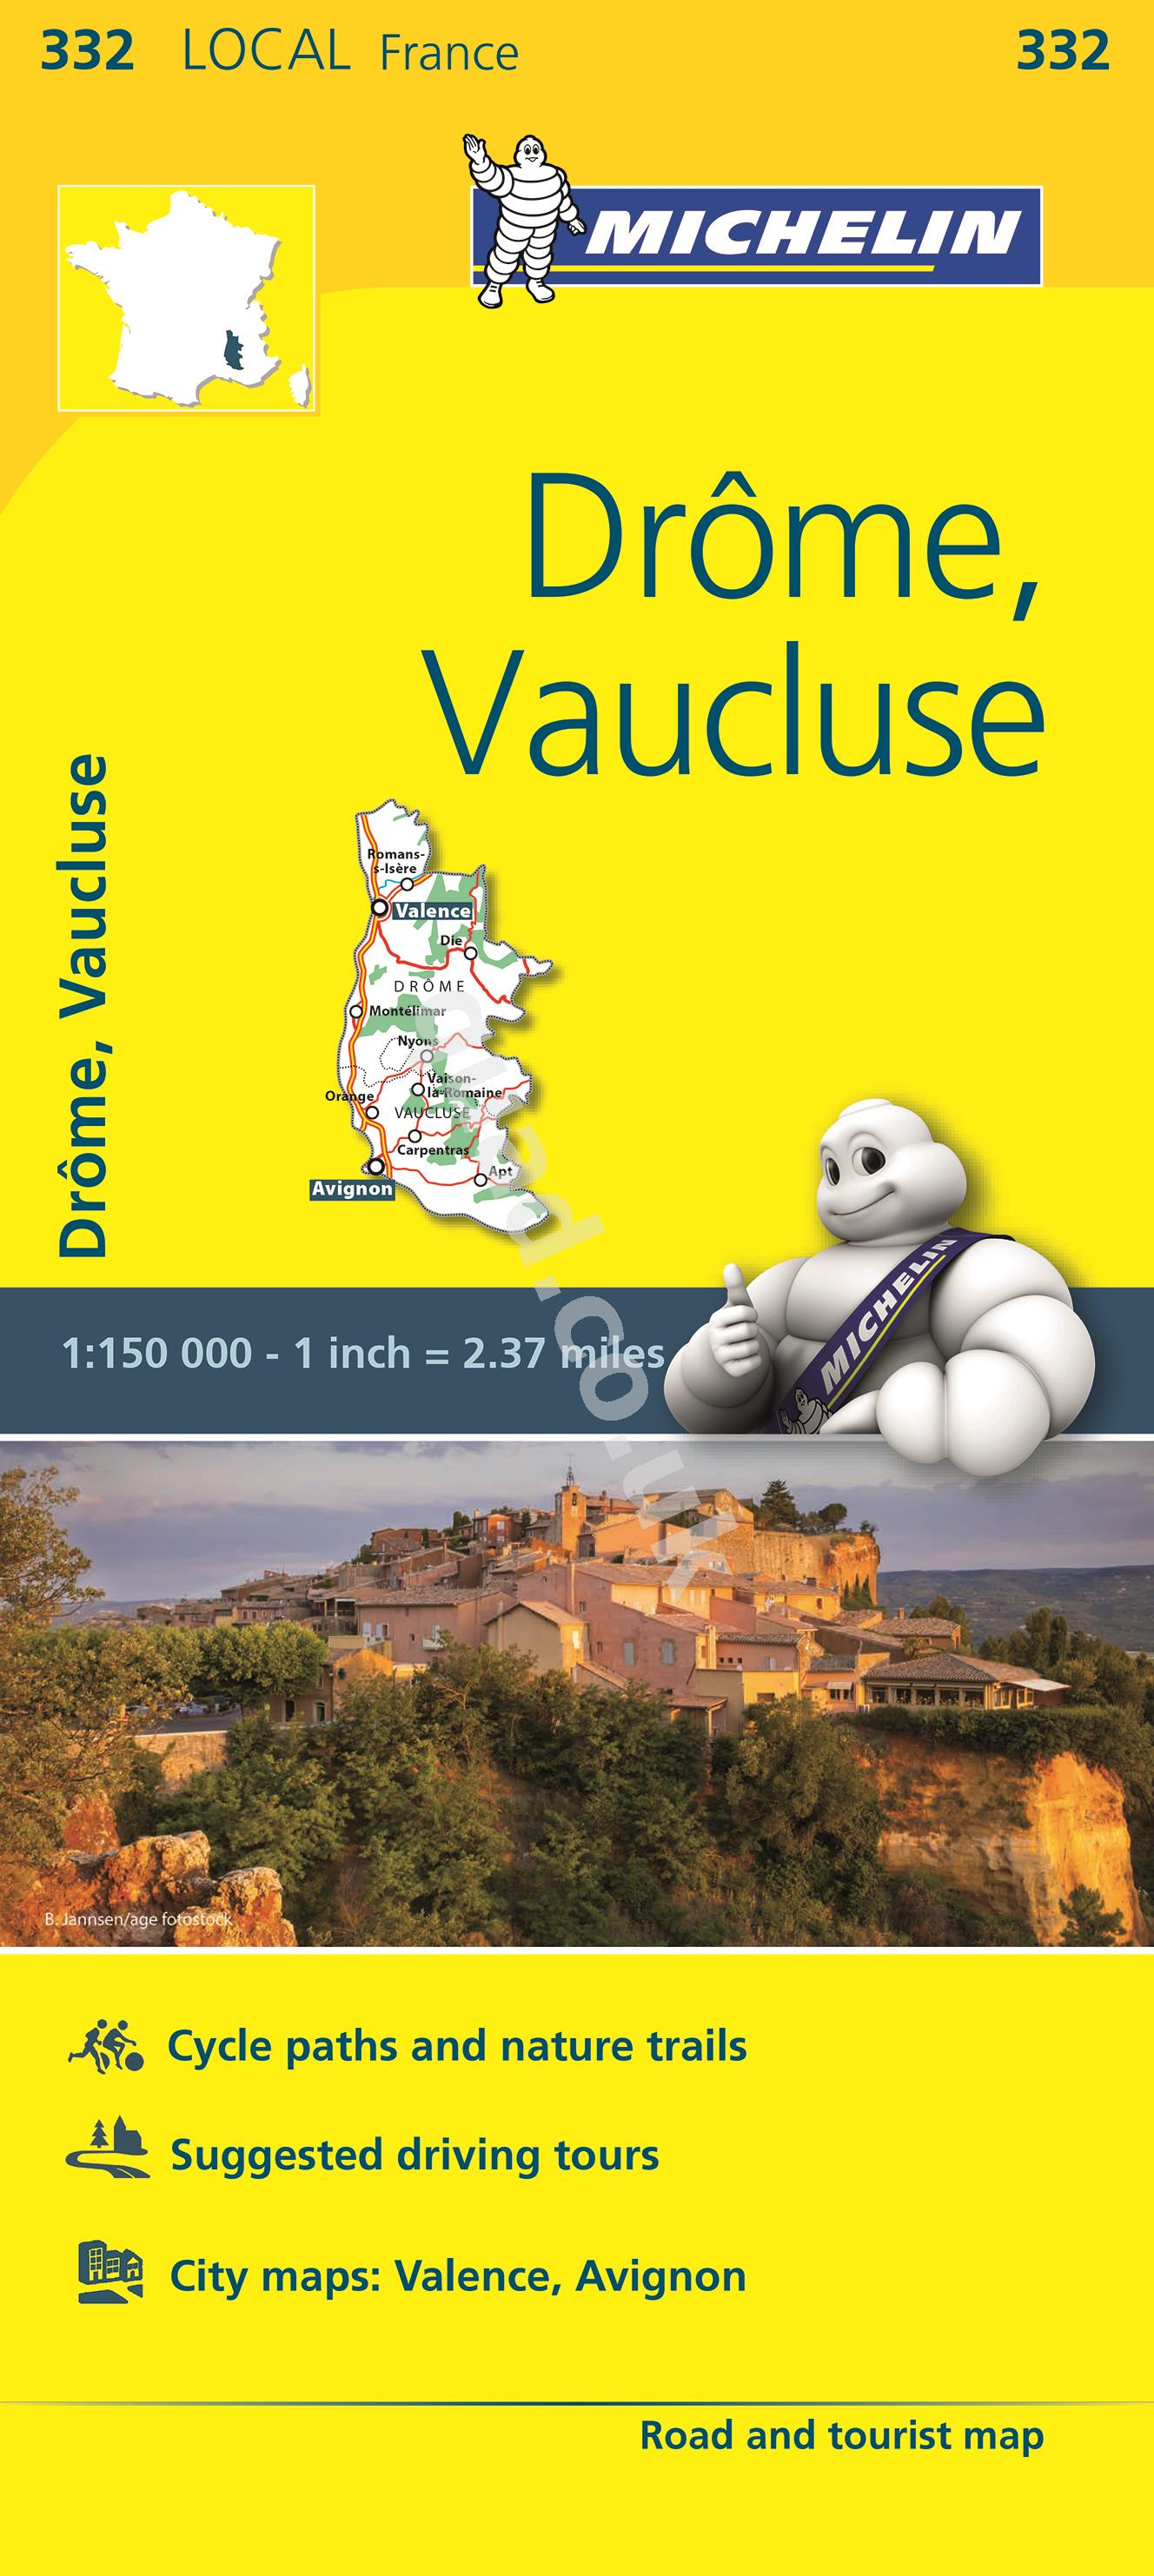 Michelin  Local Map - Drome, Vaucluse (France)